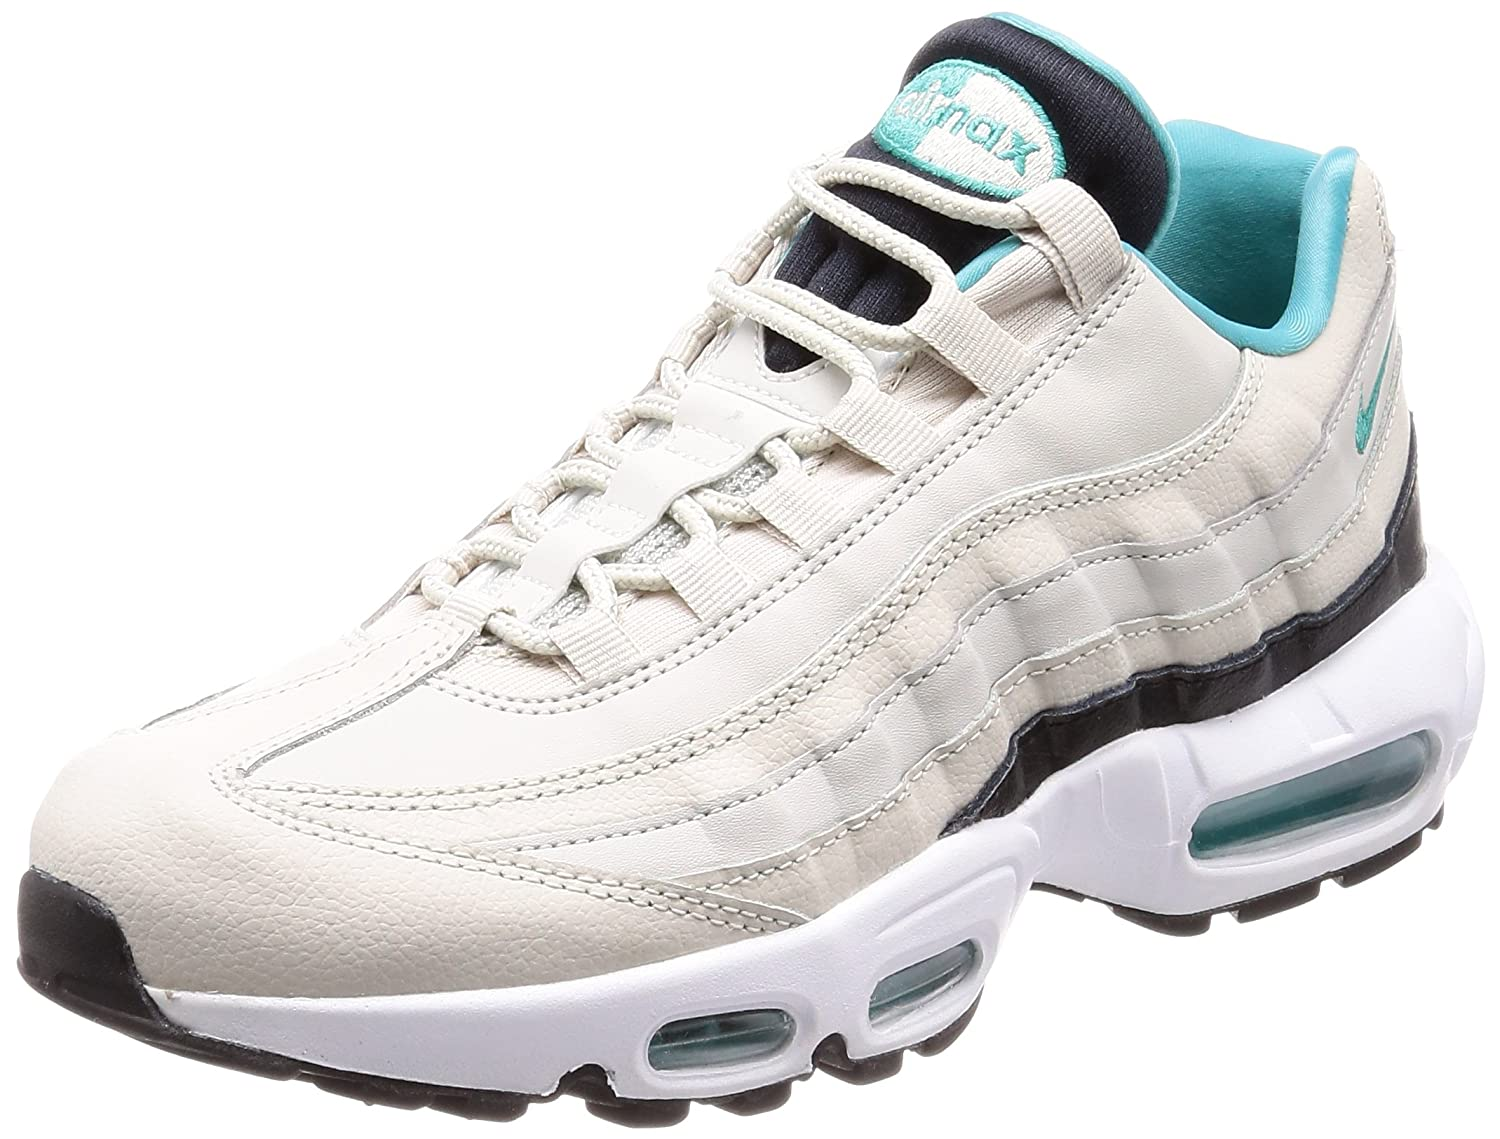 d07f47cca313a Nike Air Max 95 Essential Light Bone Black White Sport Turquoise Stone UK  7  Amazon.co.uk  Shoes   Bags